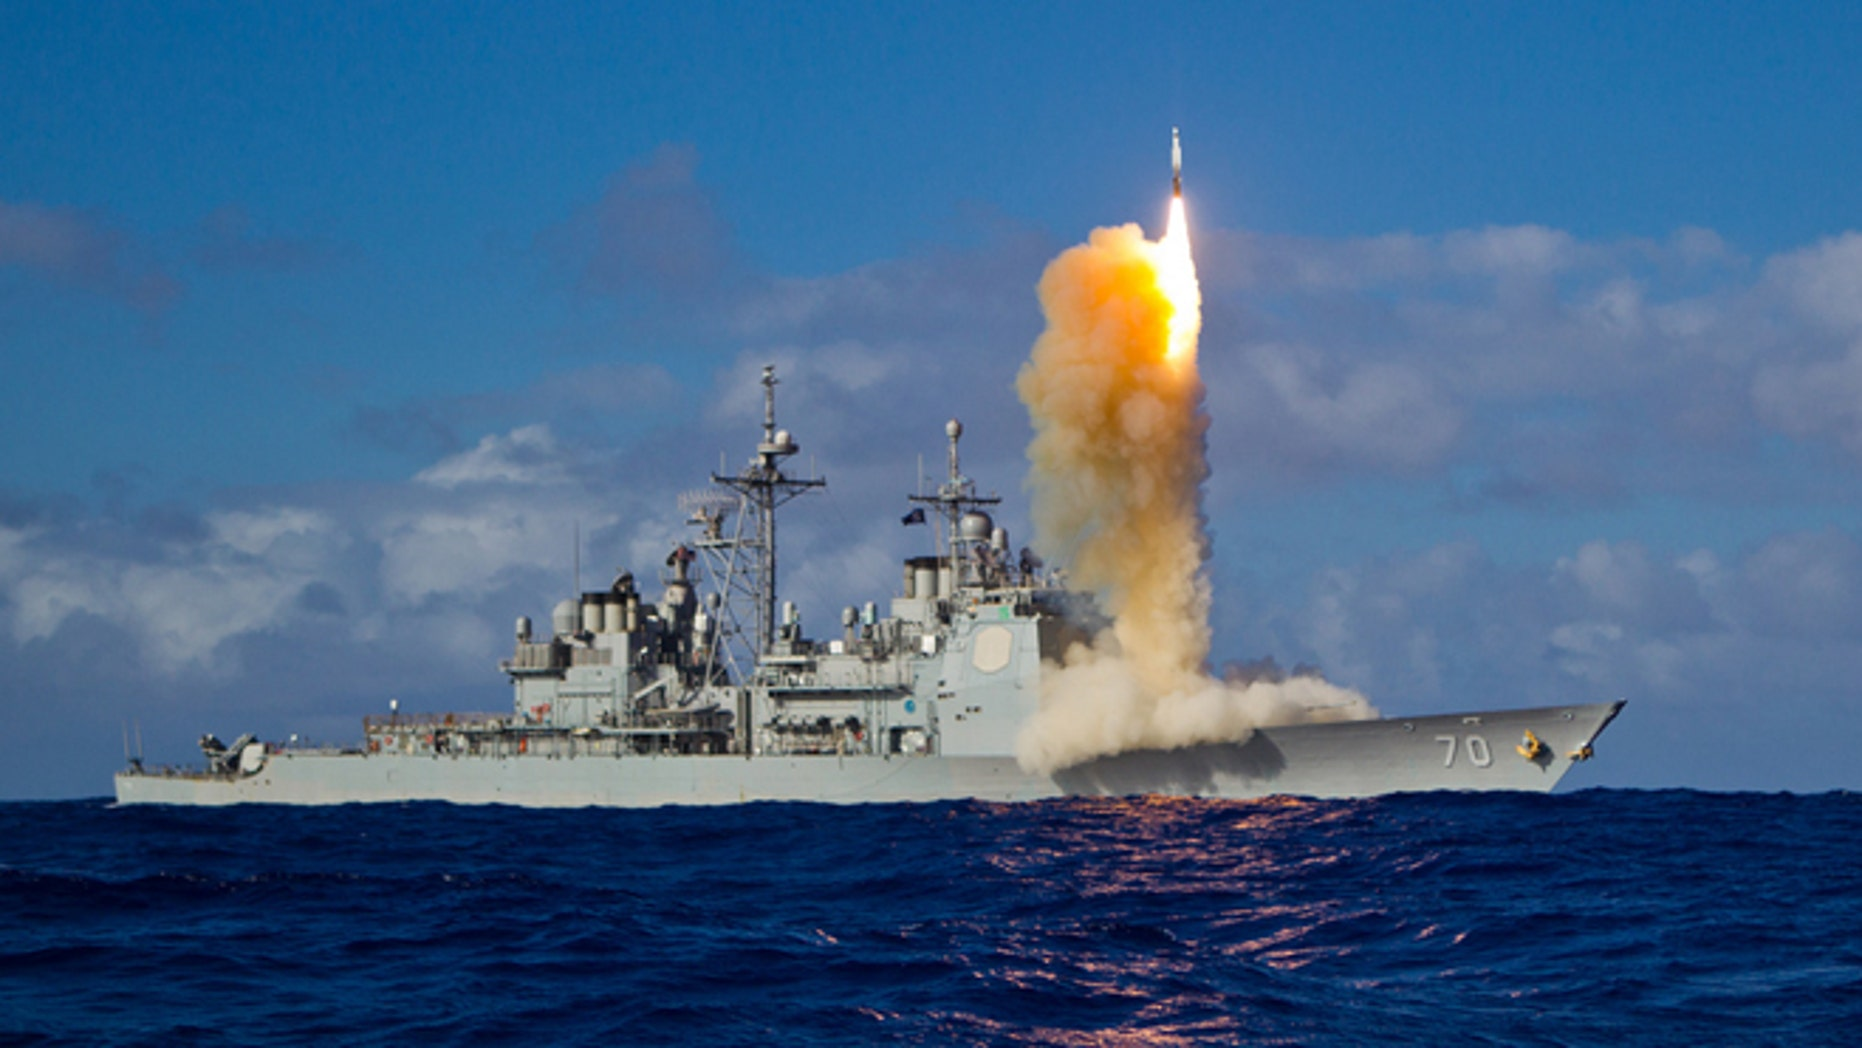 May 16, 2013: A Standard Missile  3 (SM-3) Block 1B interceptor is launched from the USS LAKE ERIE (CG 70) during a Missile Defense Agency and U.S. Navy test in the mid-Pacific.